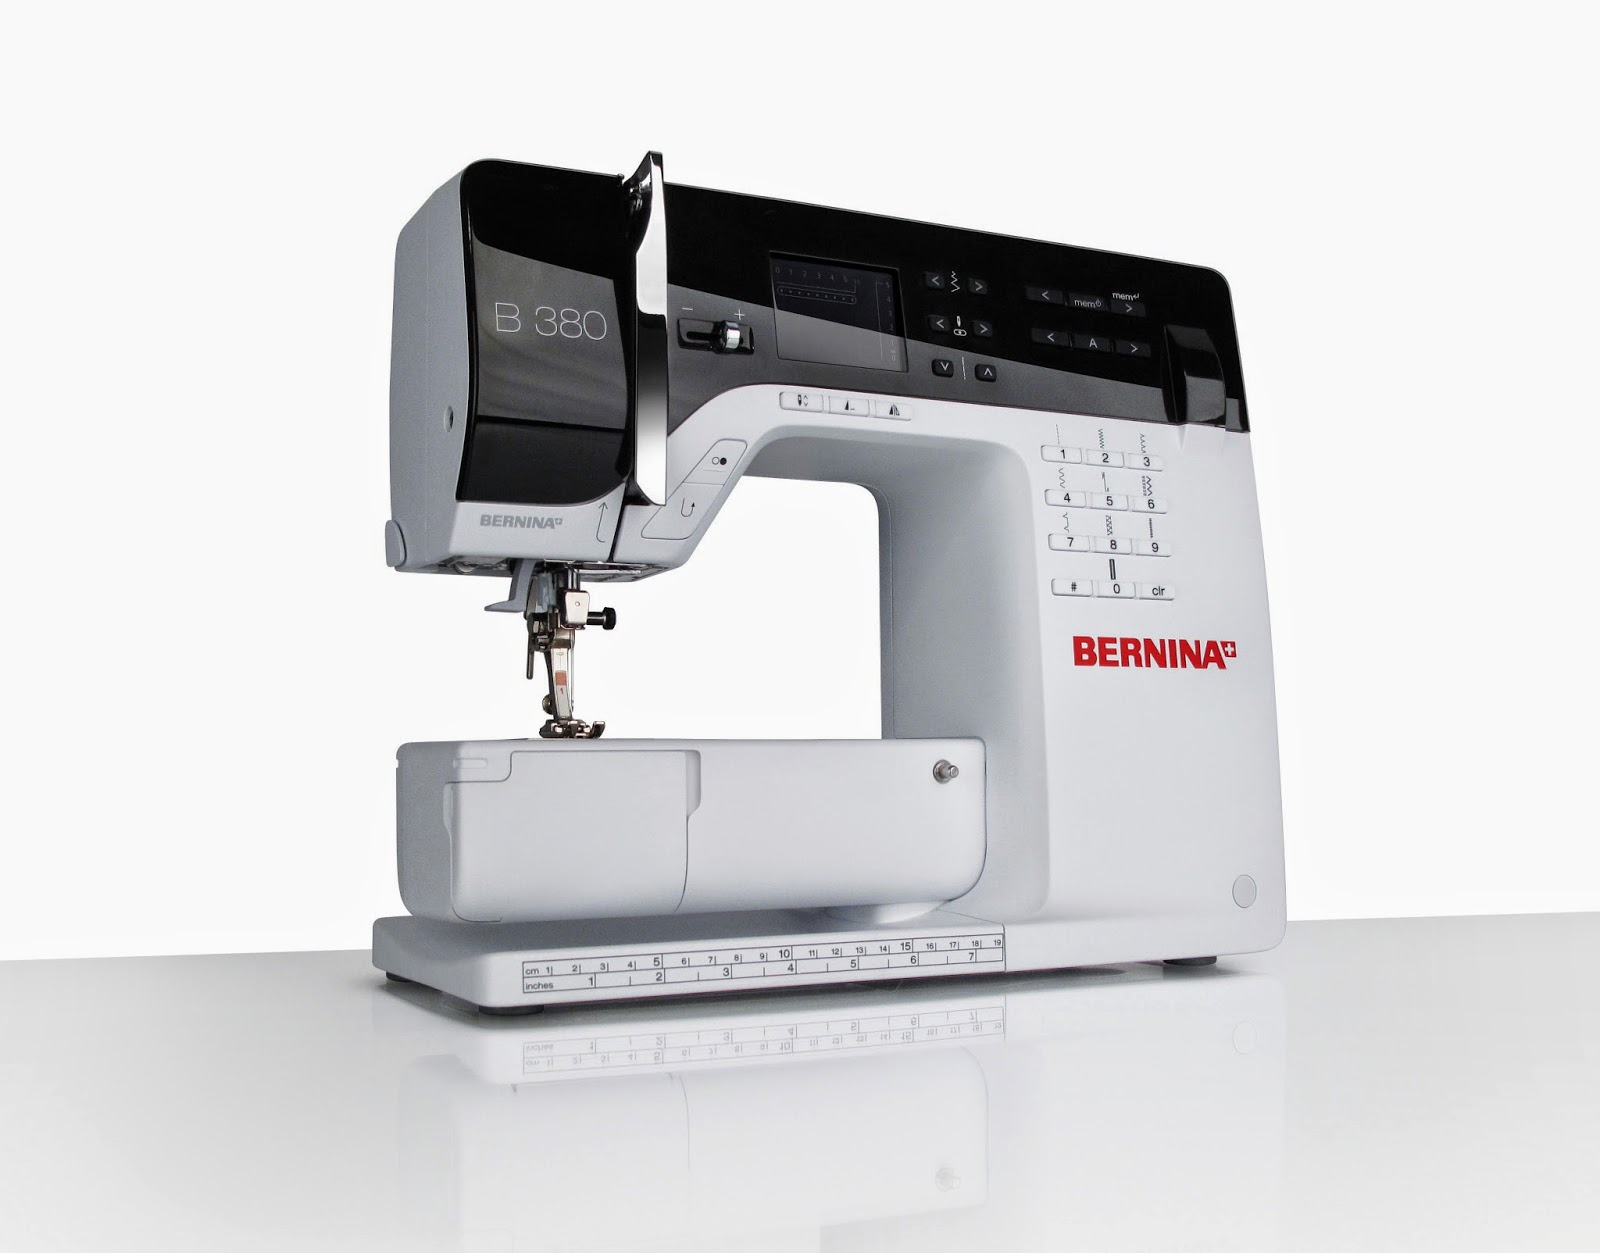 medium resolution of which sewing machine should i buy life is beautiful jpg 1600x1253 used bernina sewing machines sale